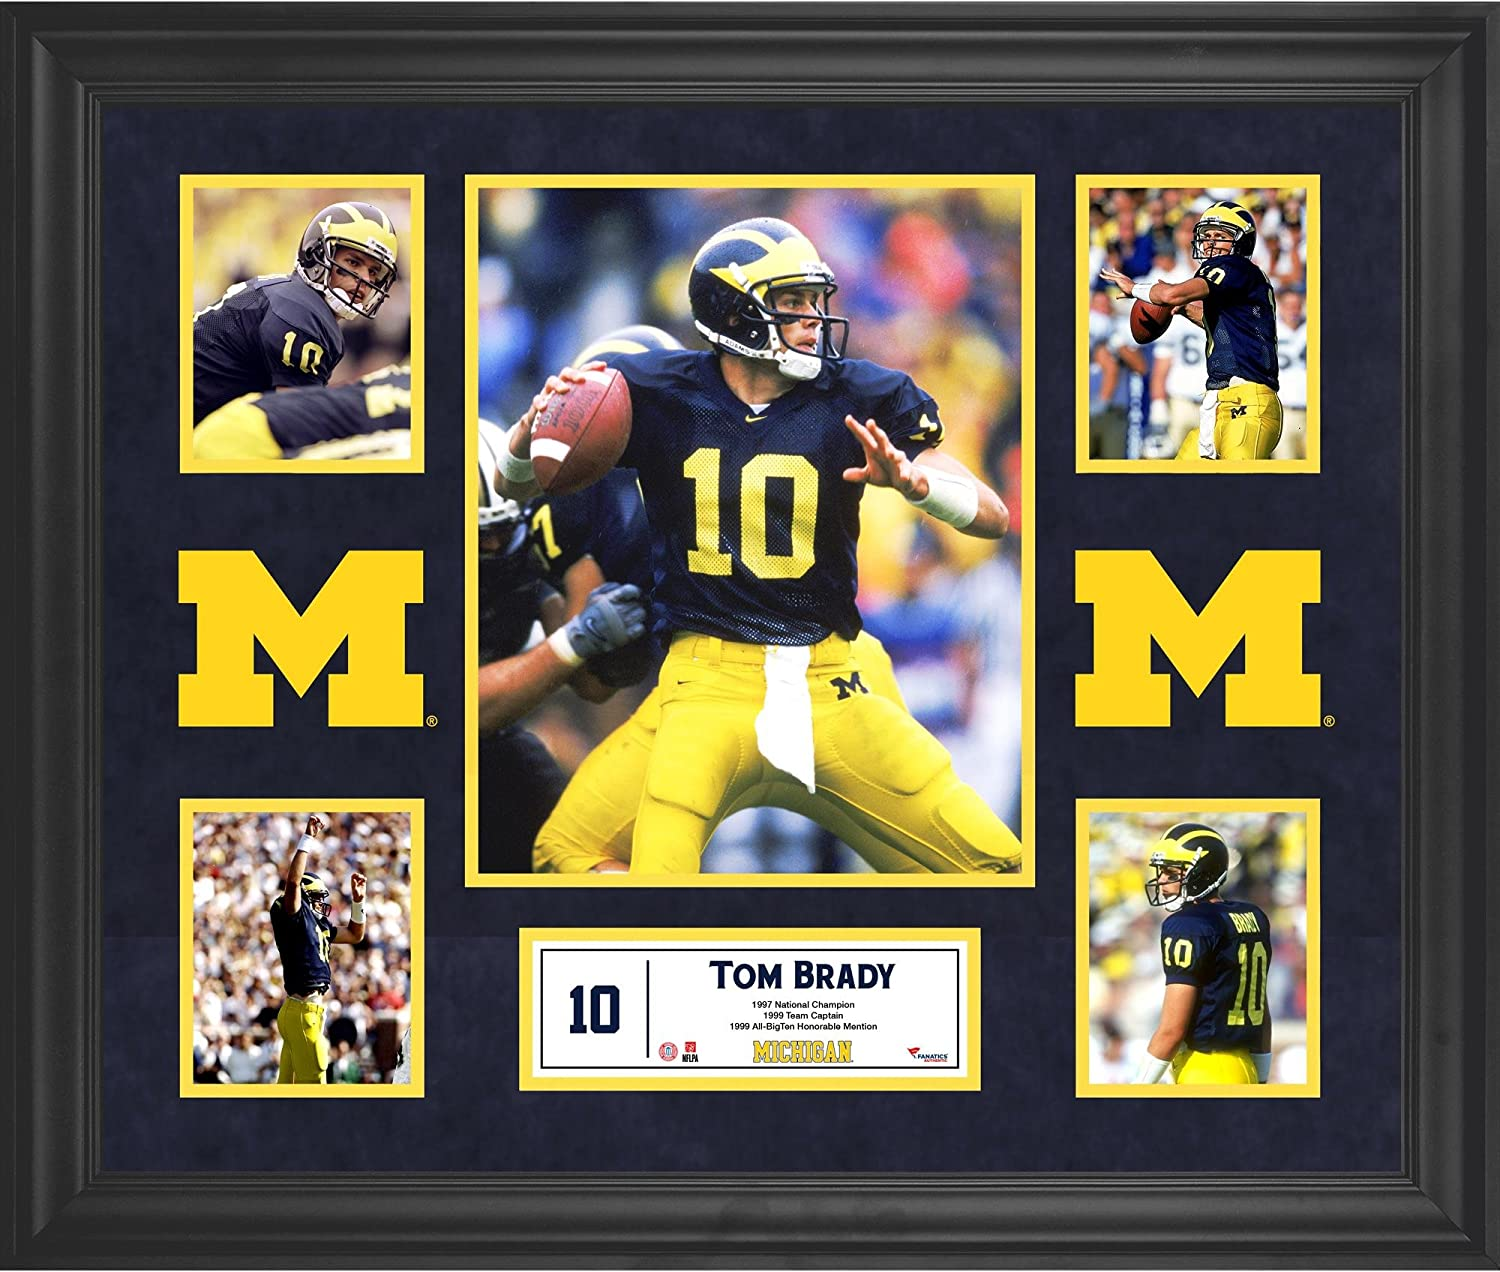 Tom Brady Michigan Wolverines Framed 5-Photo Collage - College Player Plaques and Collages